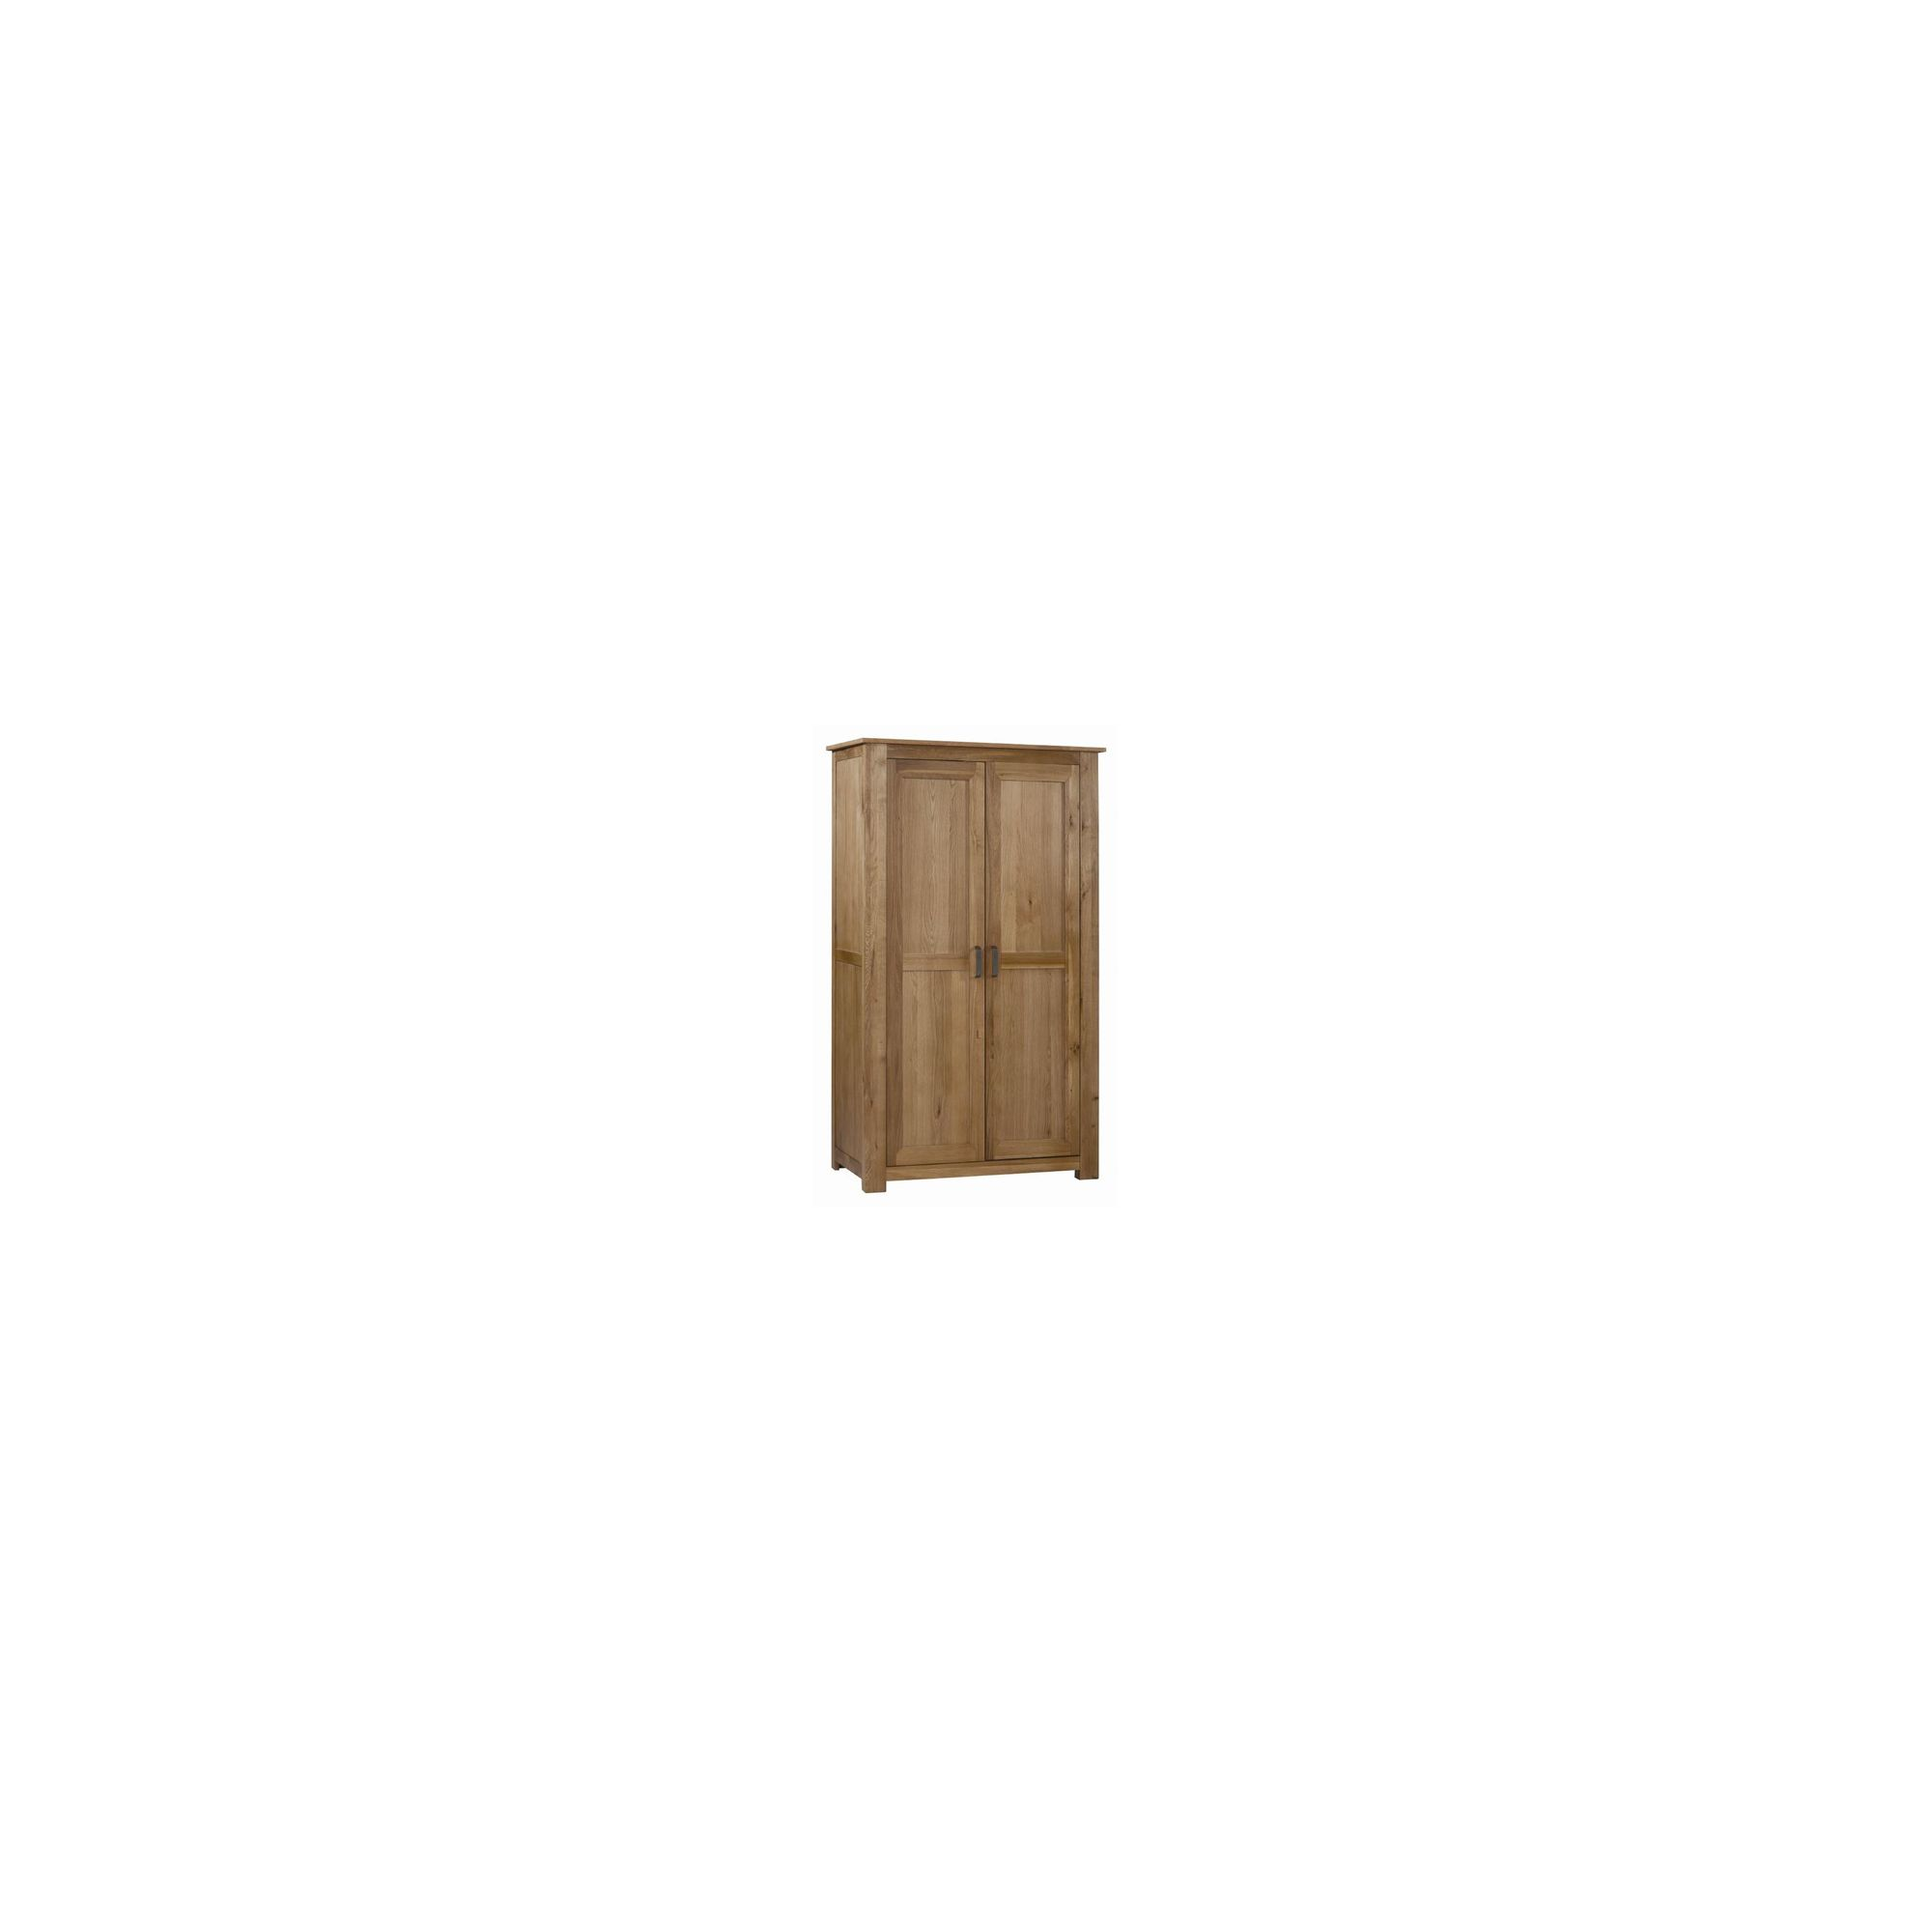 Kelburn Furniture Lyon Ladies Wardrobe in Light Oak Matt Lacquer at Tesco Direct